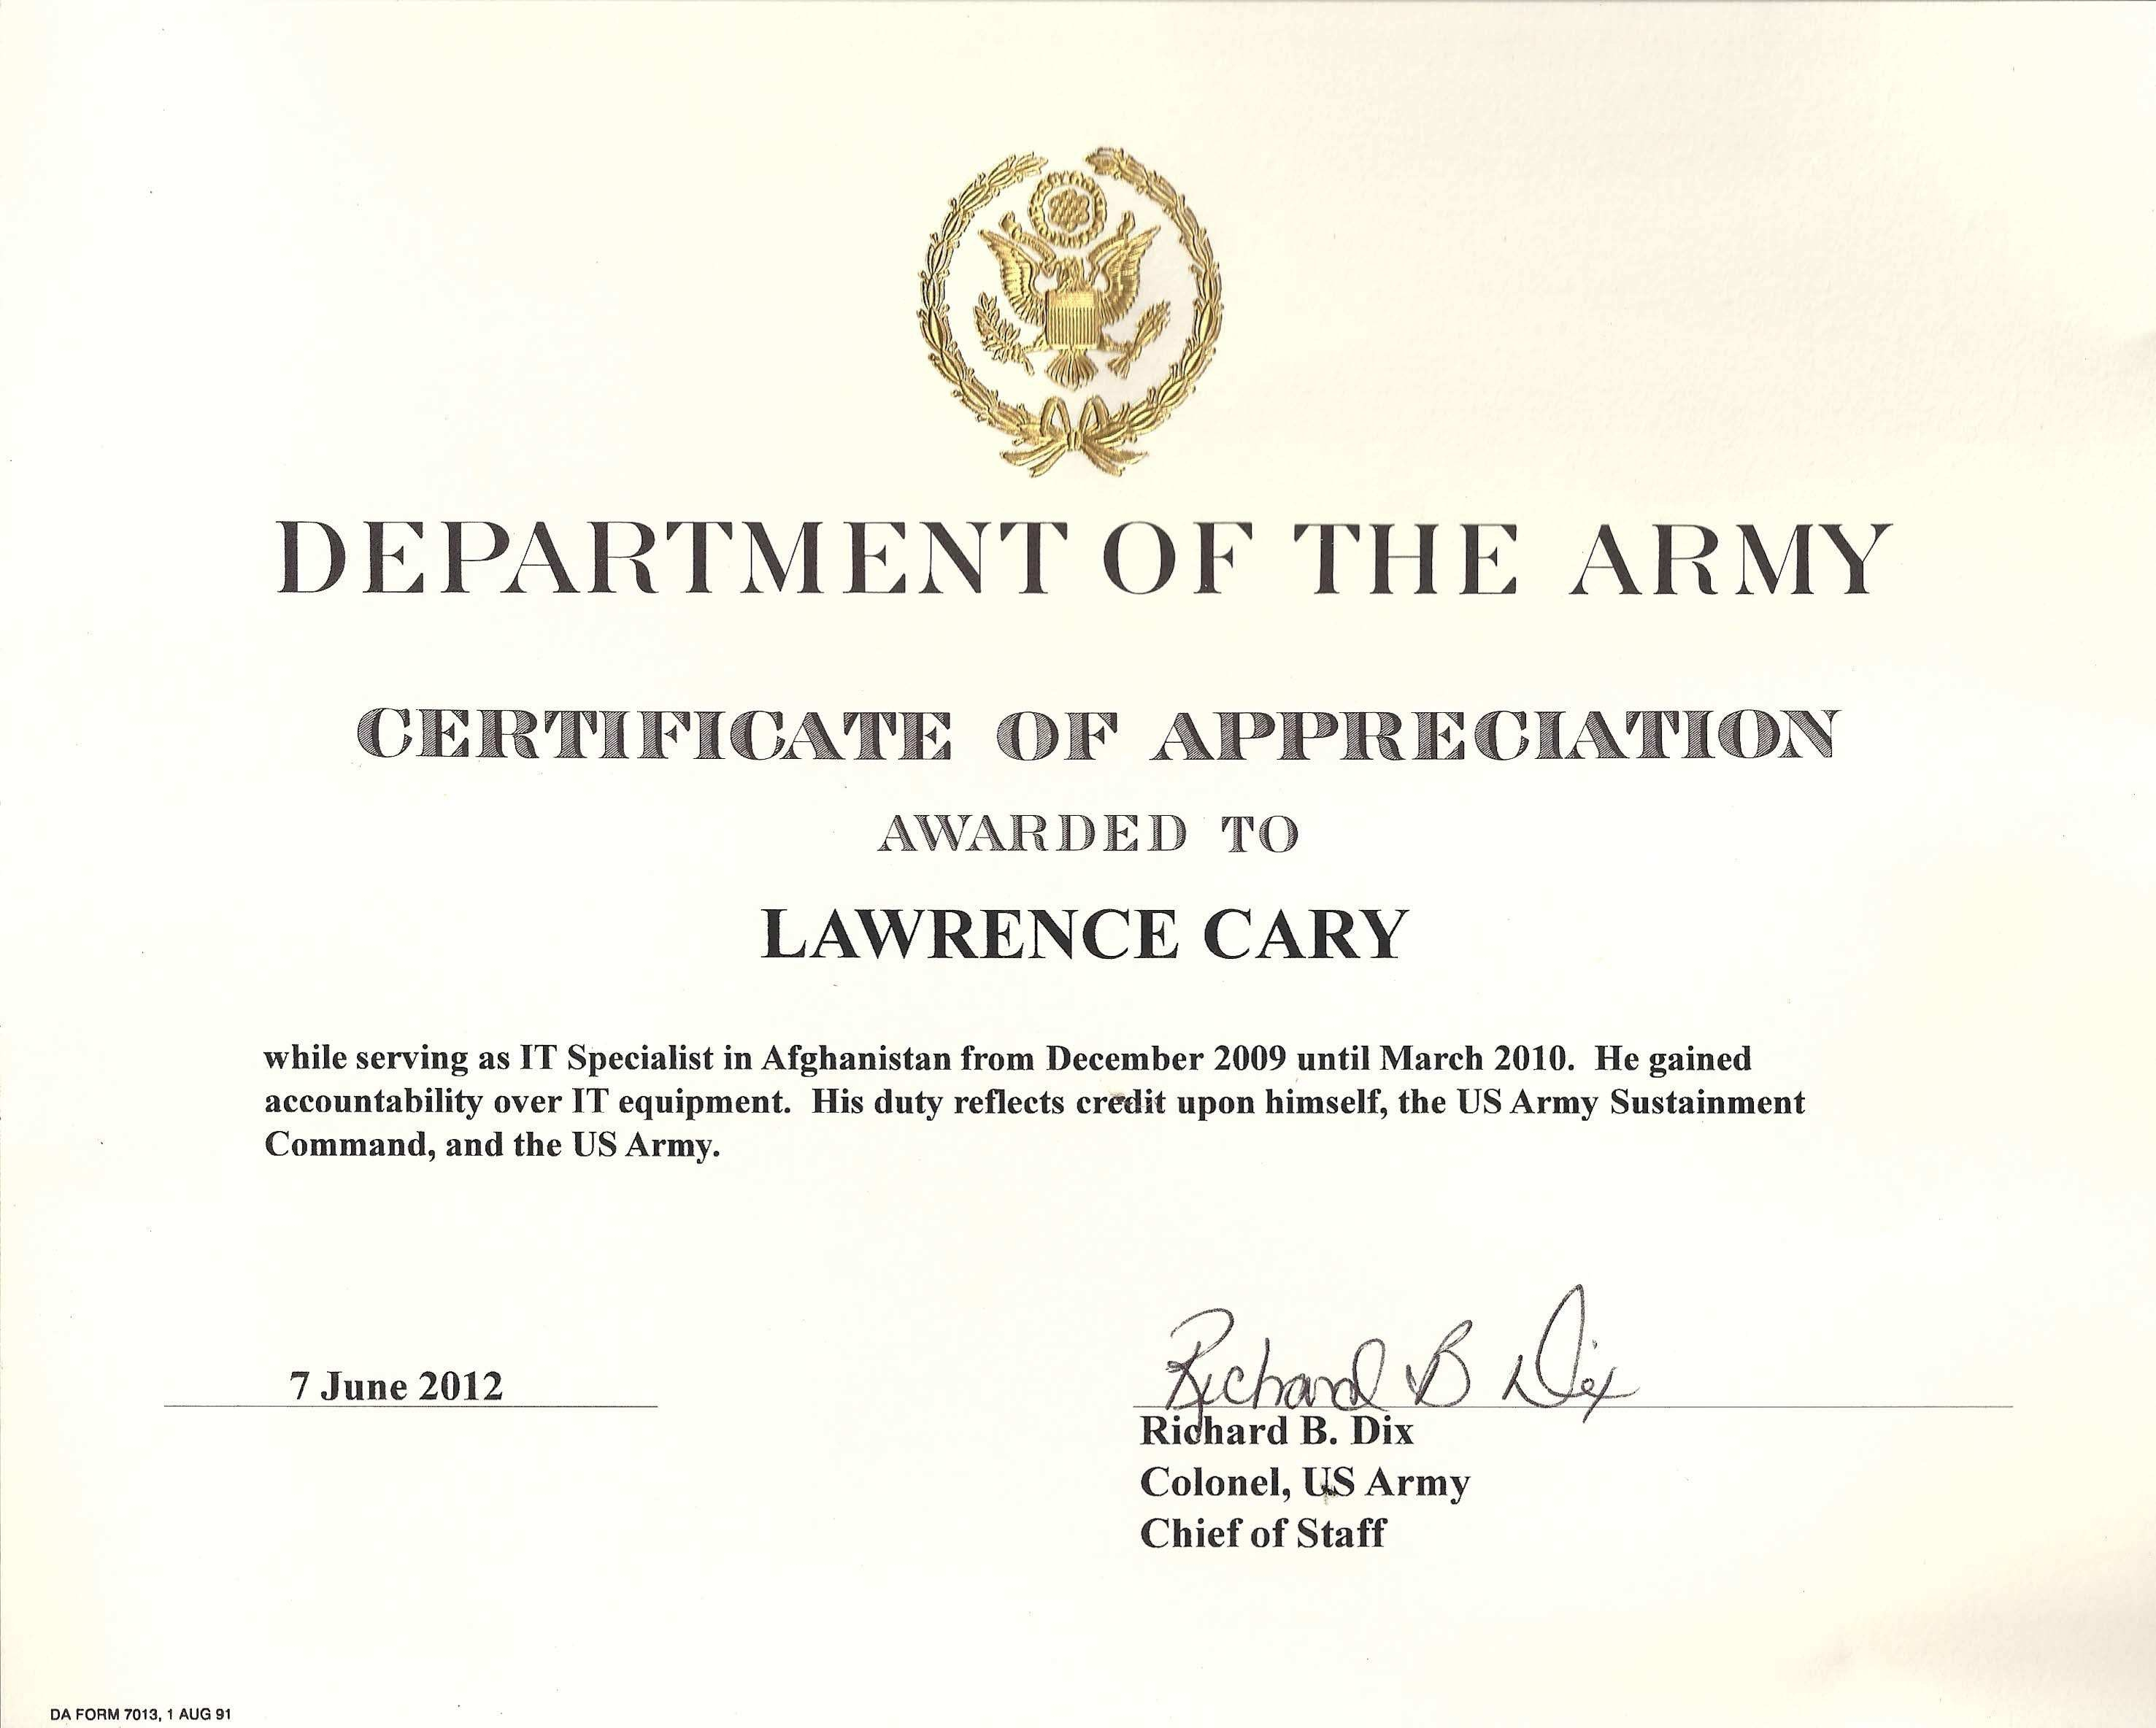 Army Certificate Of Achievement  Sansurabionetassociats Intended For Army Good Conduct Medal Certificate Template